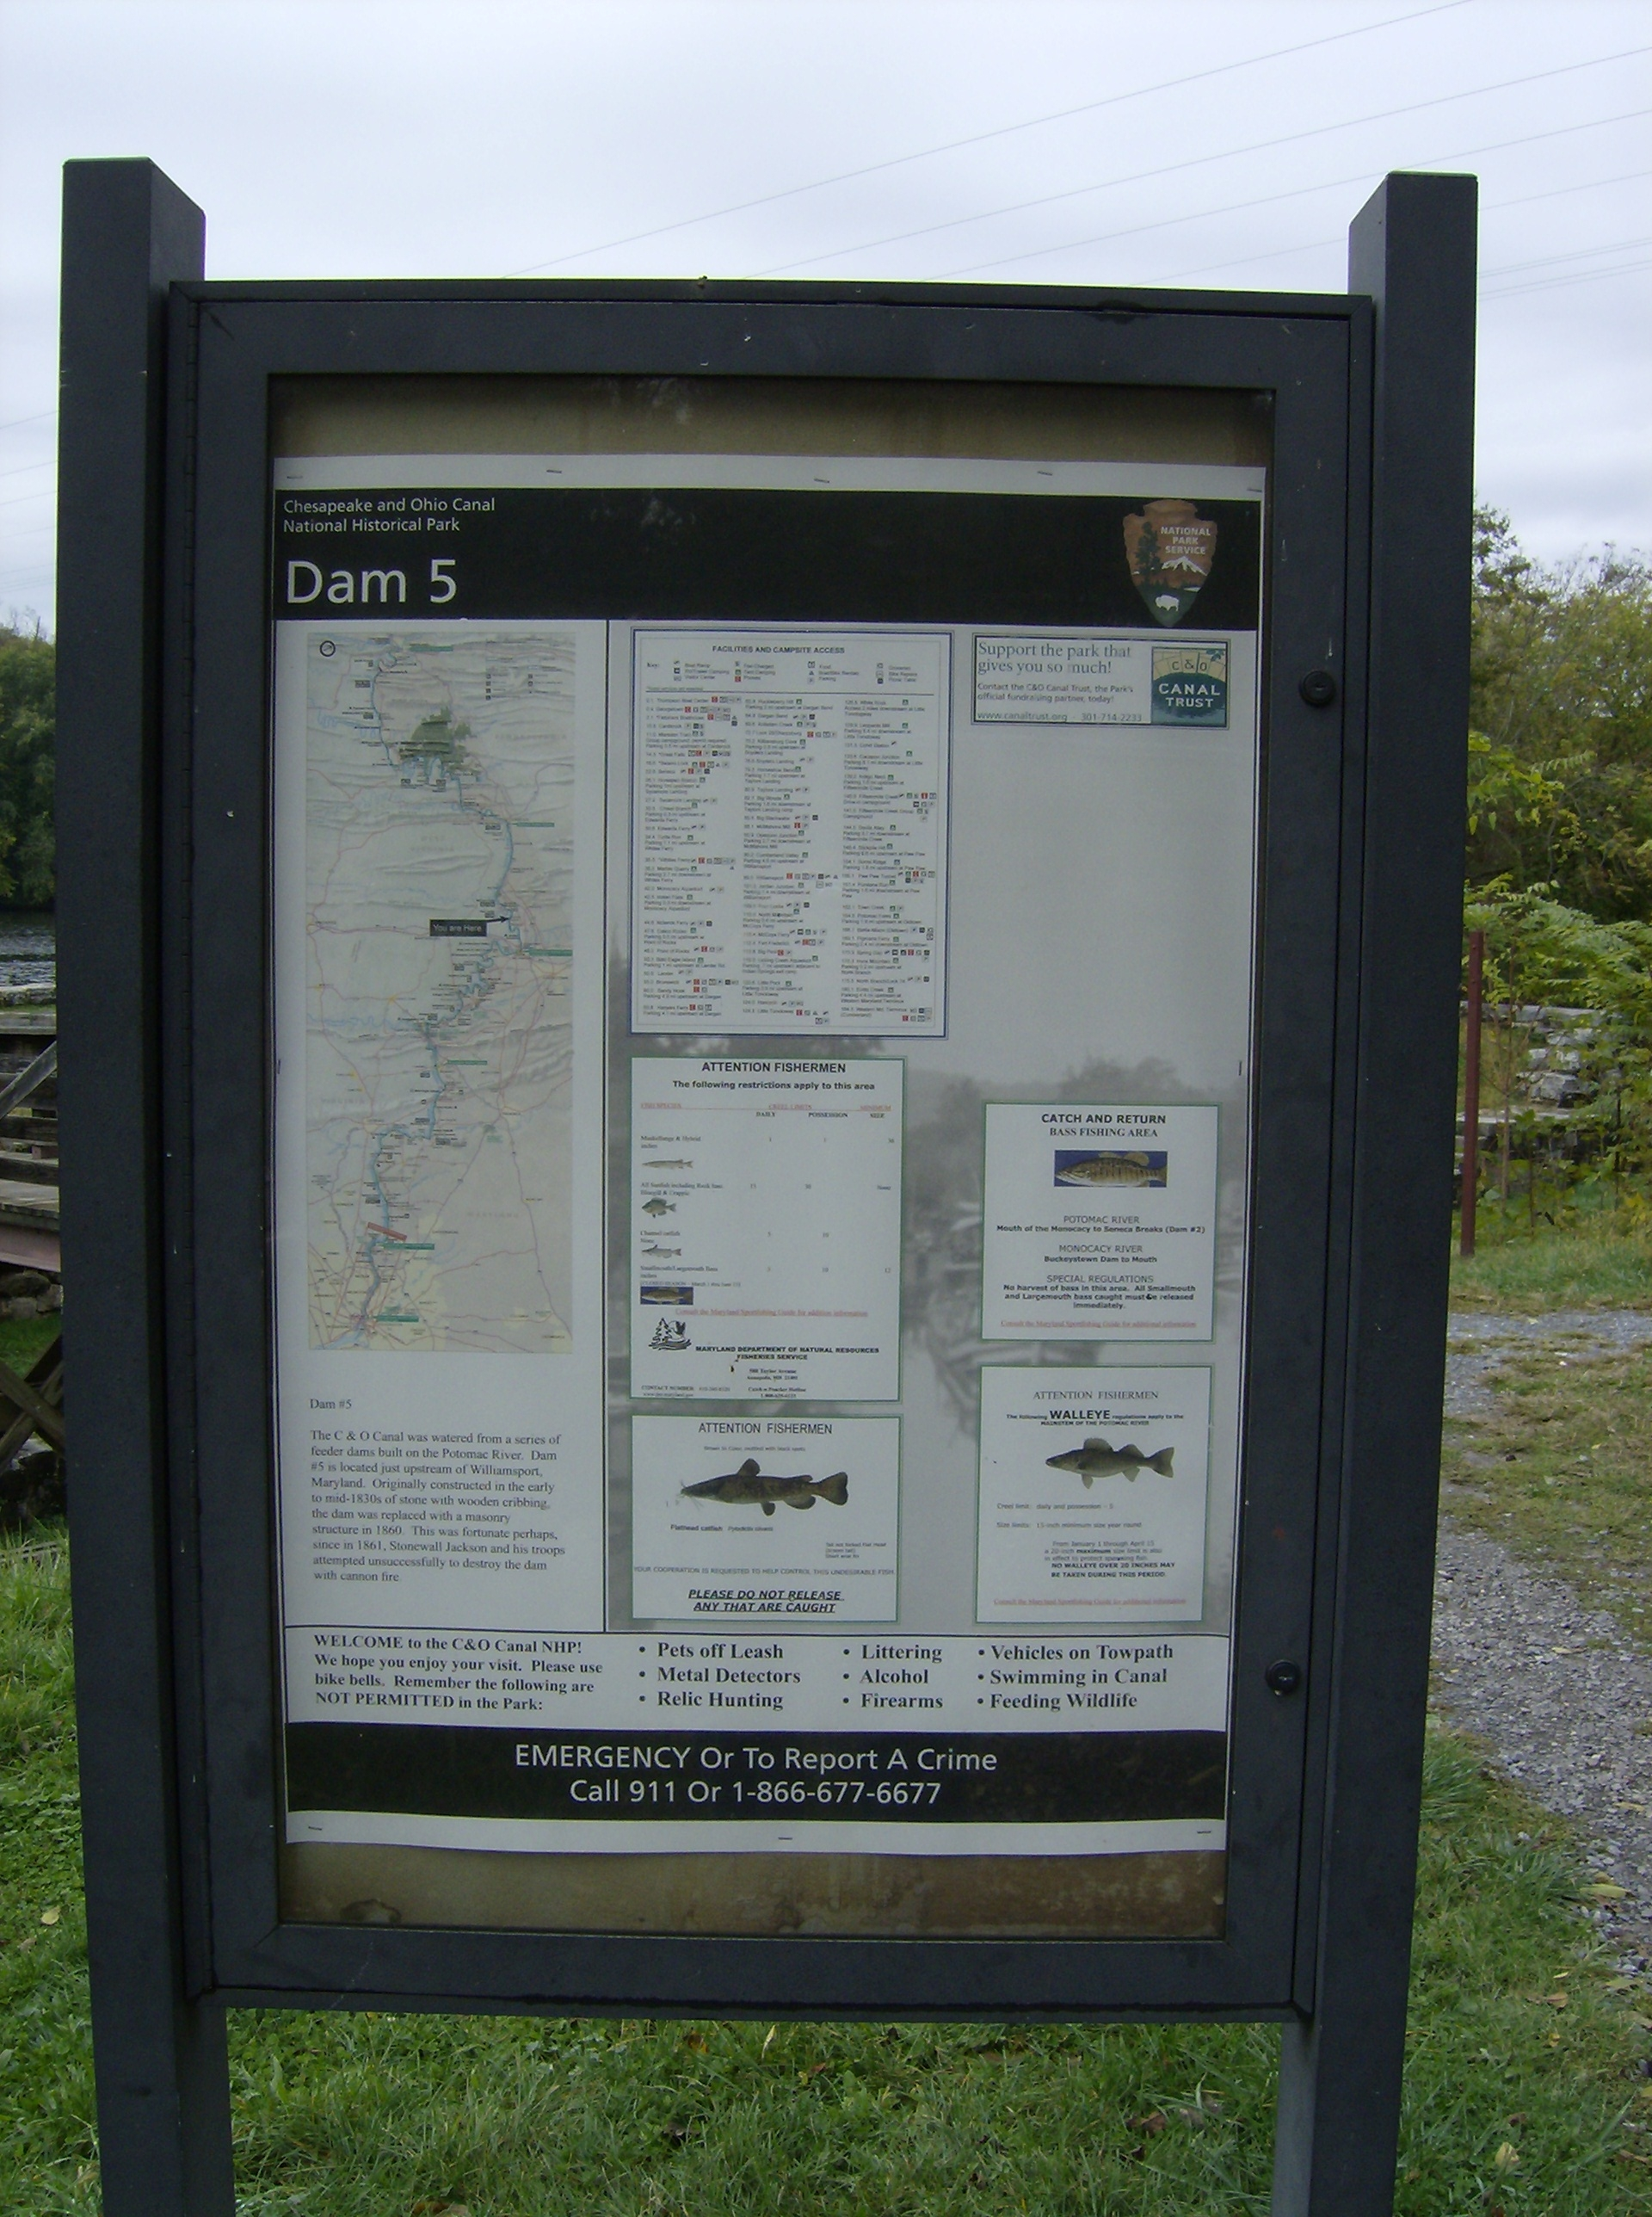 NPS information panel at Dam 5 site